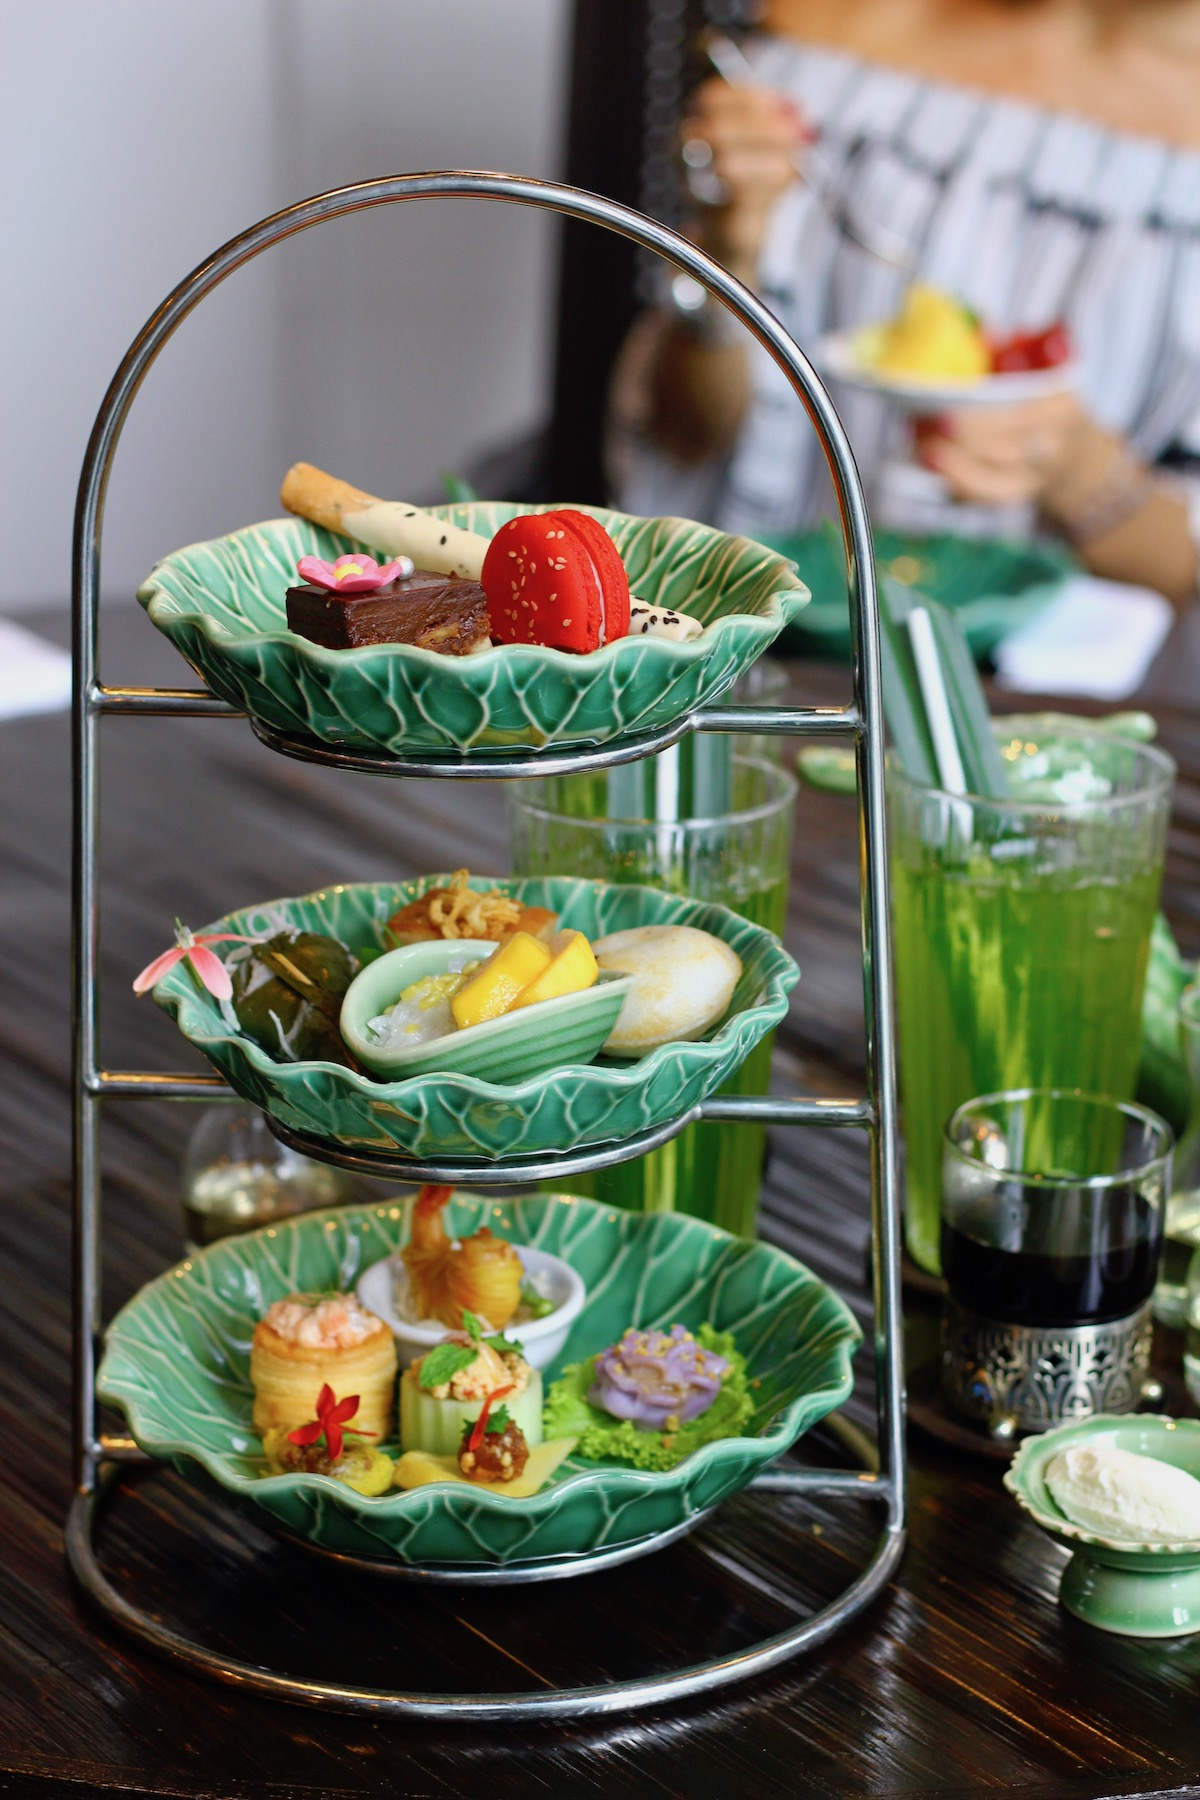 Gluten Free Luxury Hotel in Bangkok